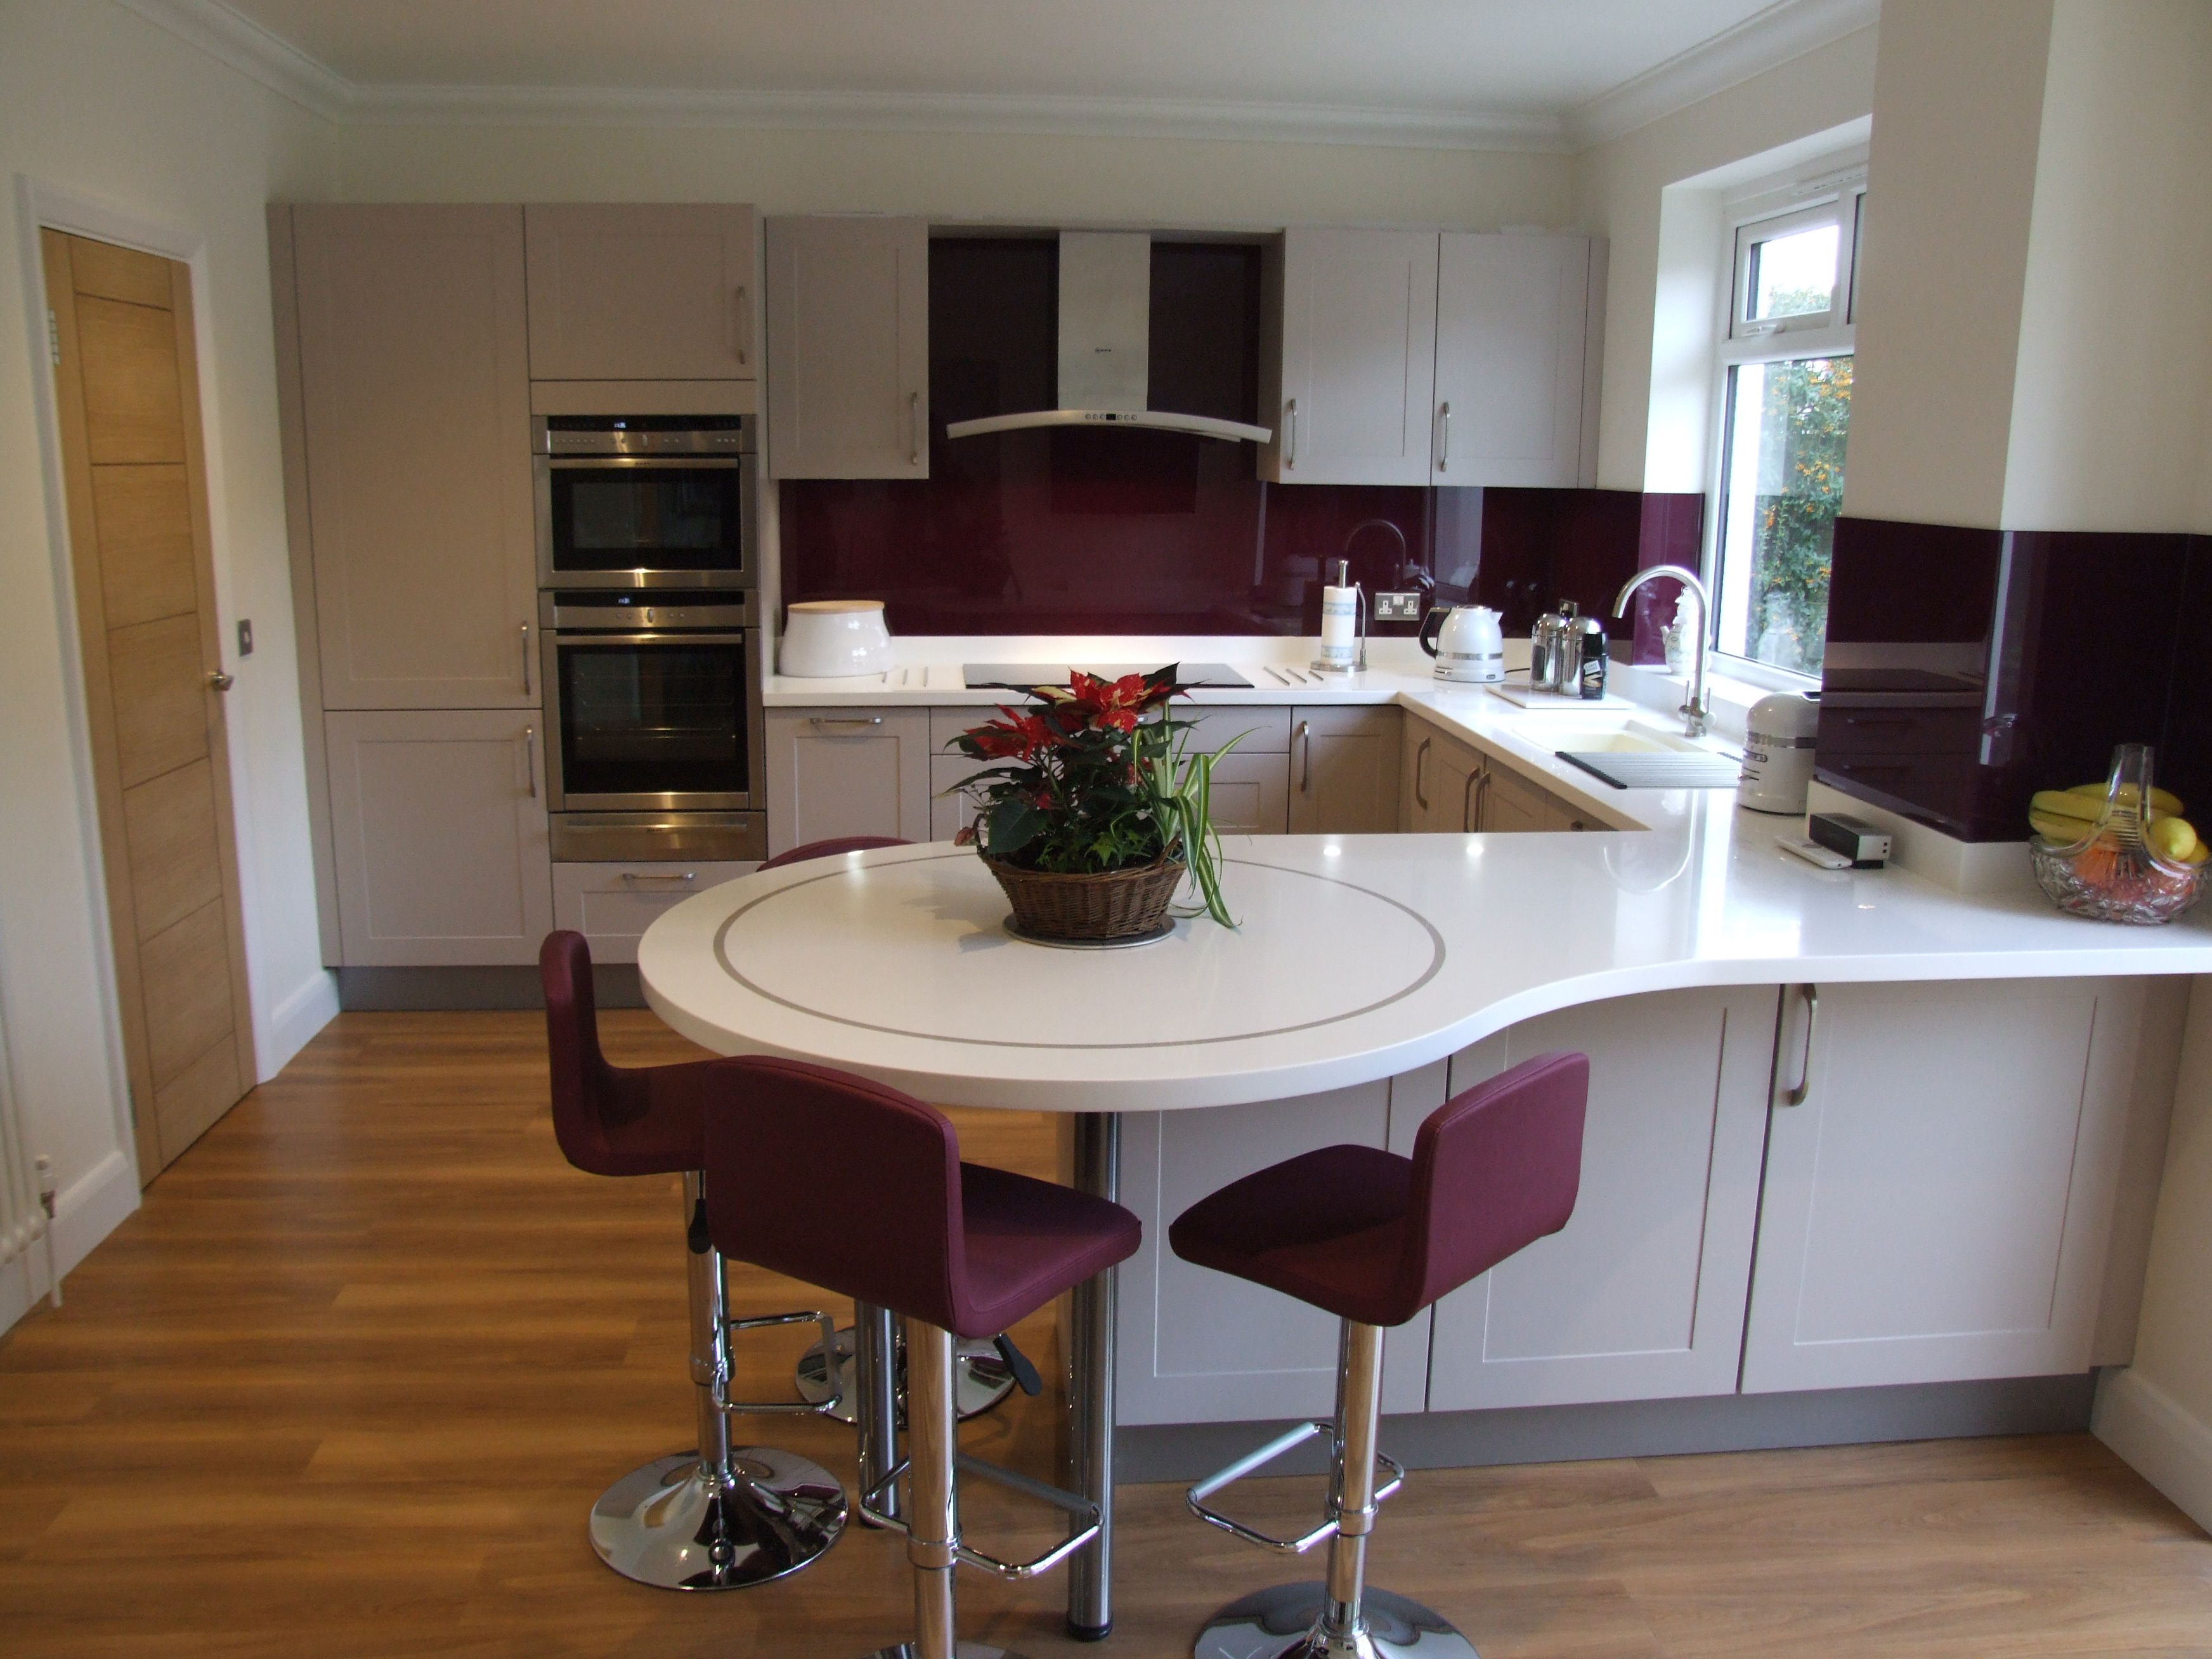 Modern painted kitchen with lovely circular breakfast bar